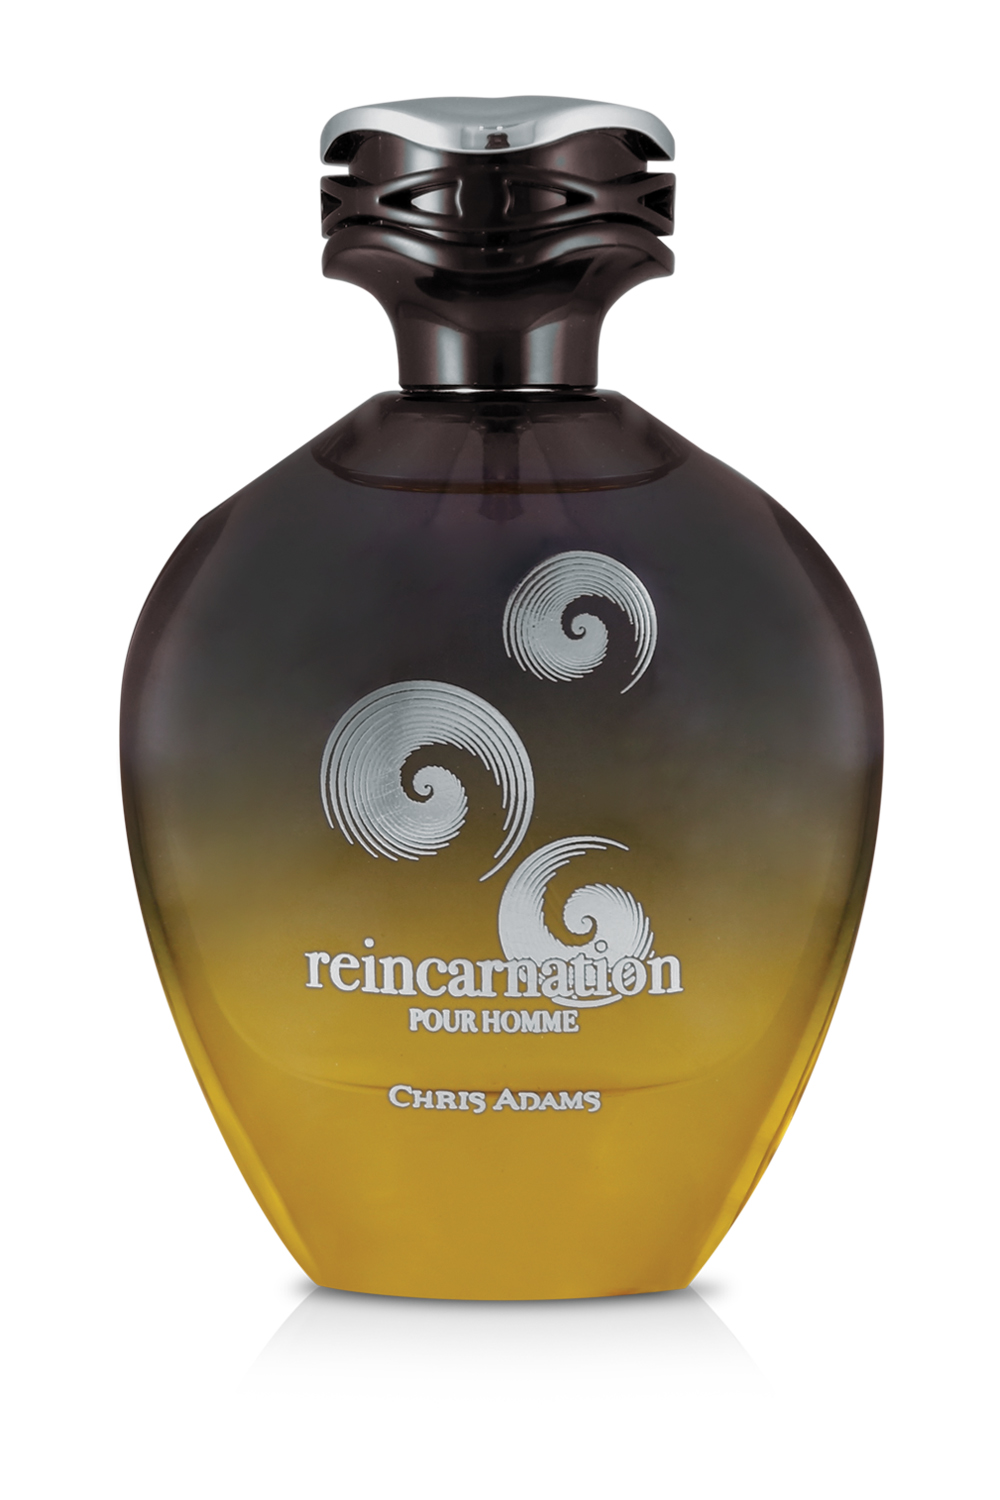 REINCARNATION spray perfume